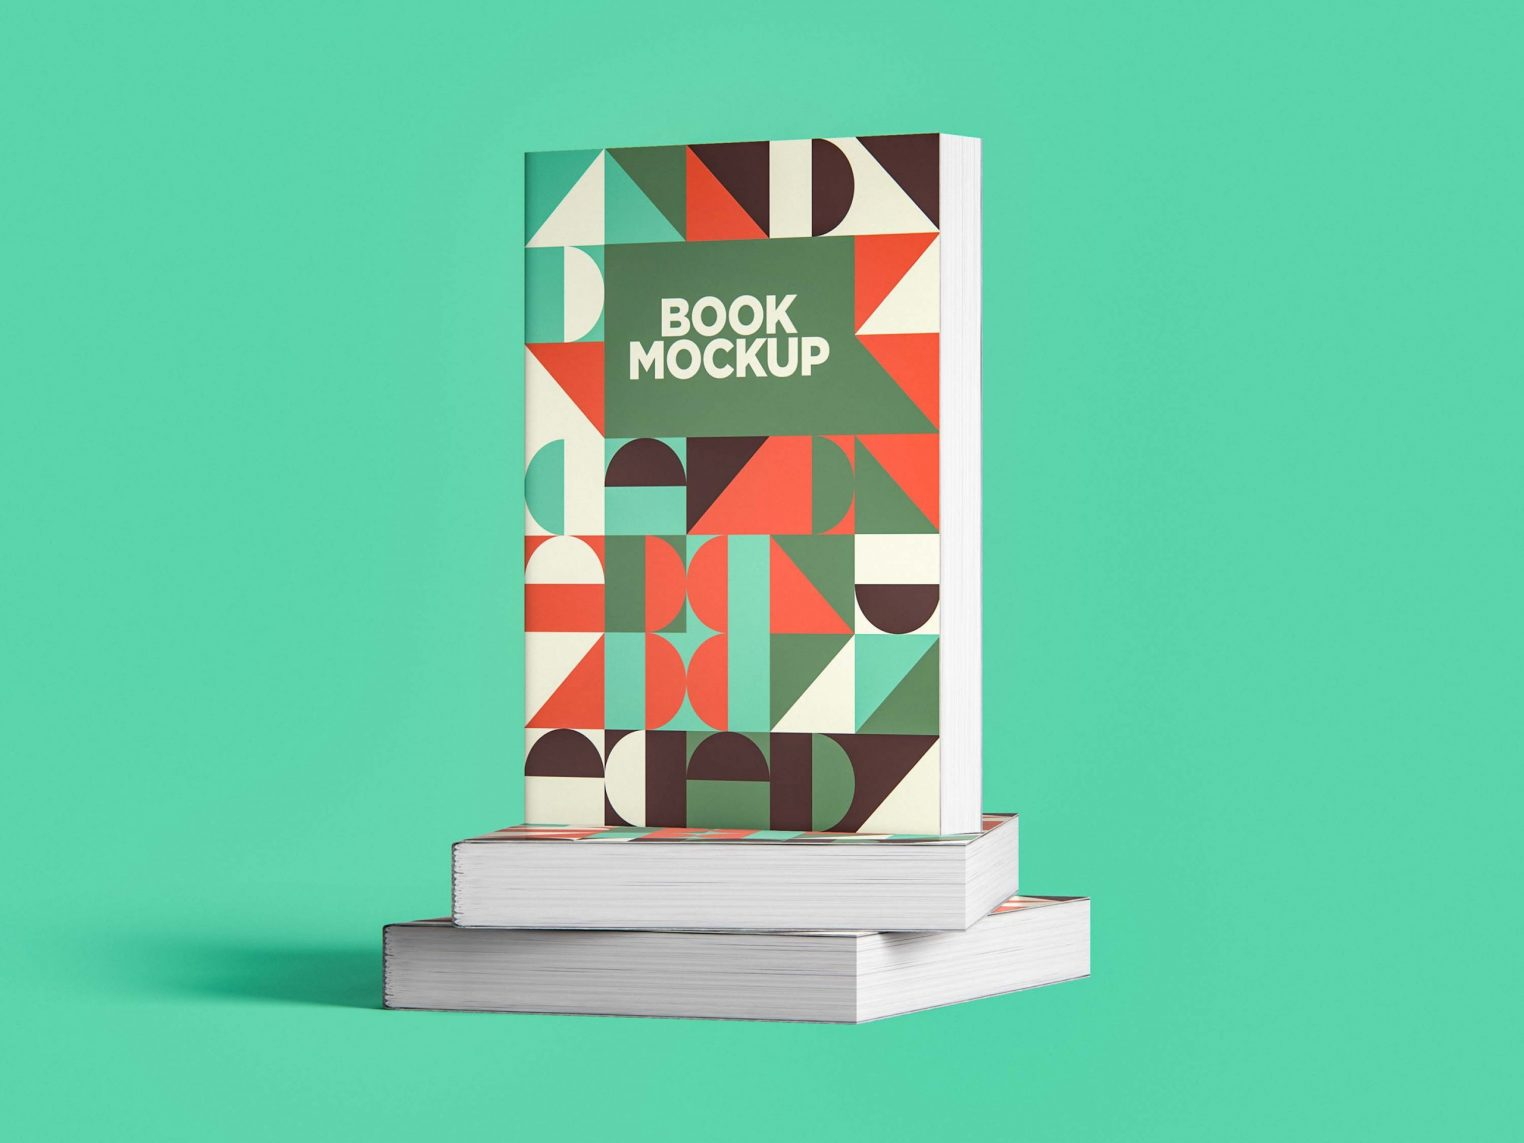 Exercise Book Mockup